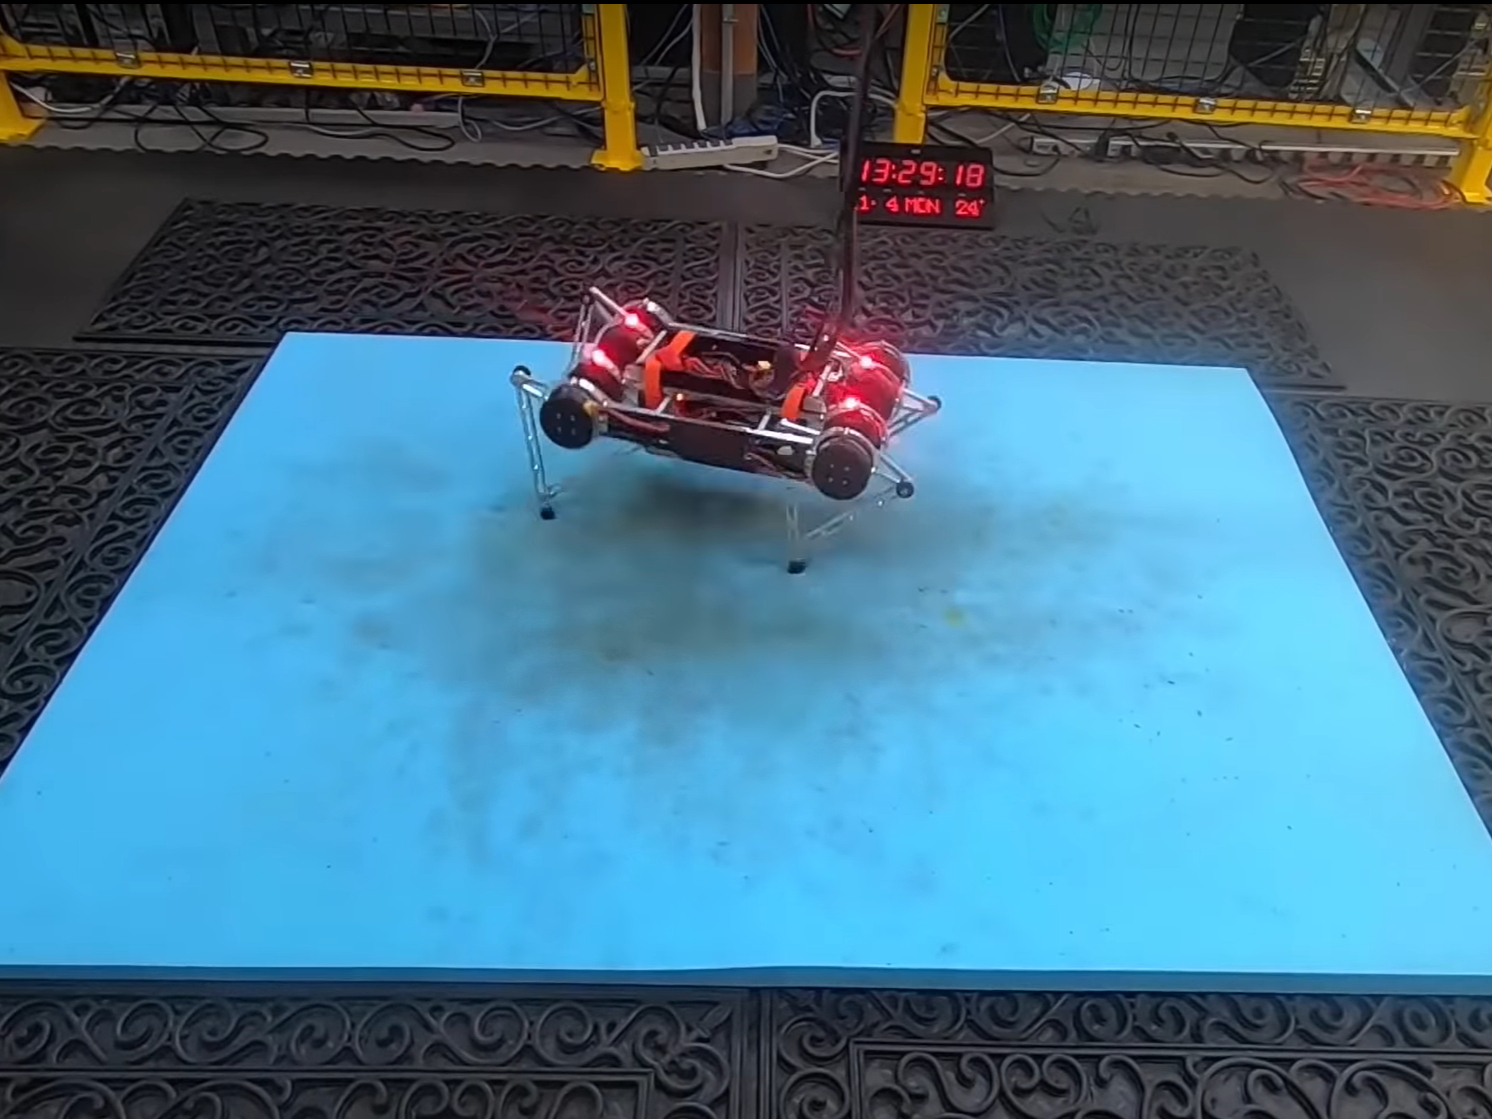 Google robot teaches itself to walk without human help in just a